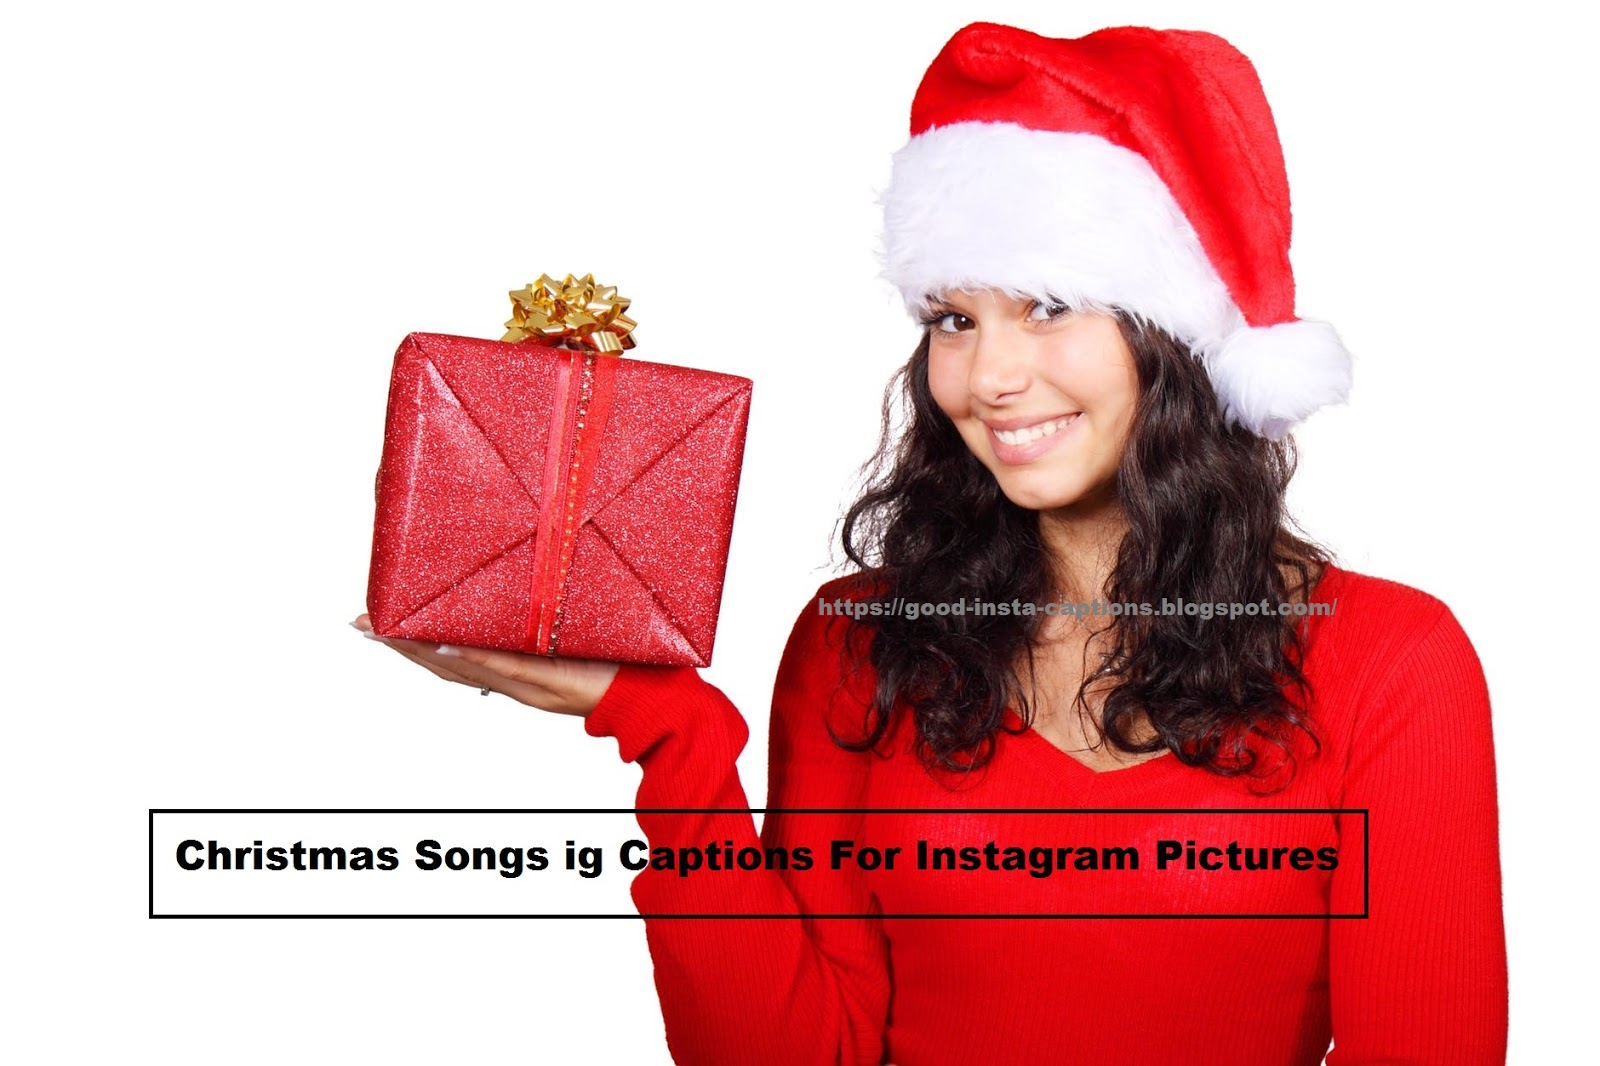 Christmas Songs ig Captions For Instagram Pictures